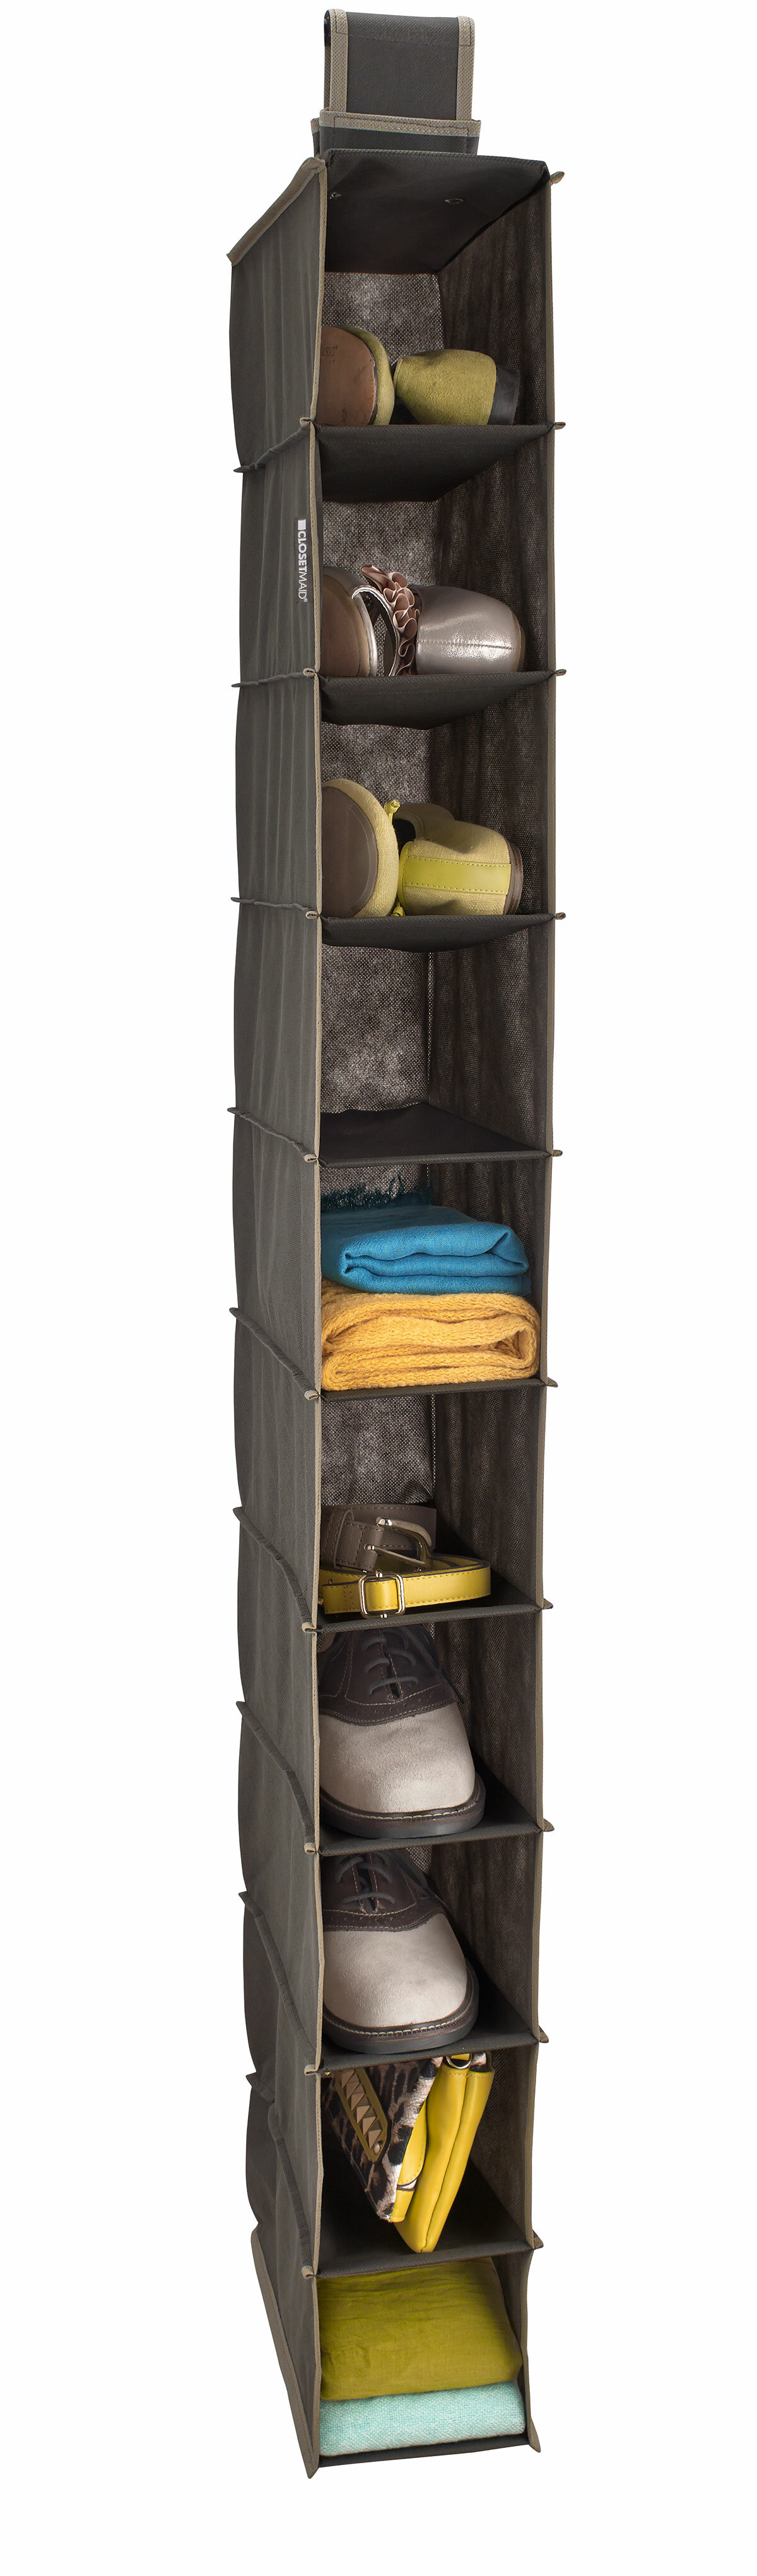 ClosetMaid 10 Shelf Closet Hanging Organizer U0026 Reviews | Wayfair